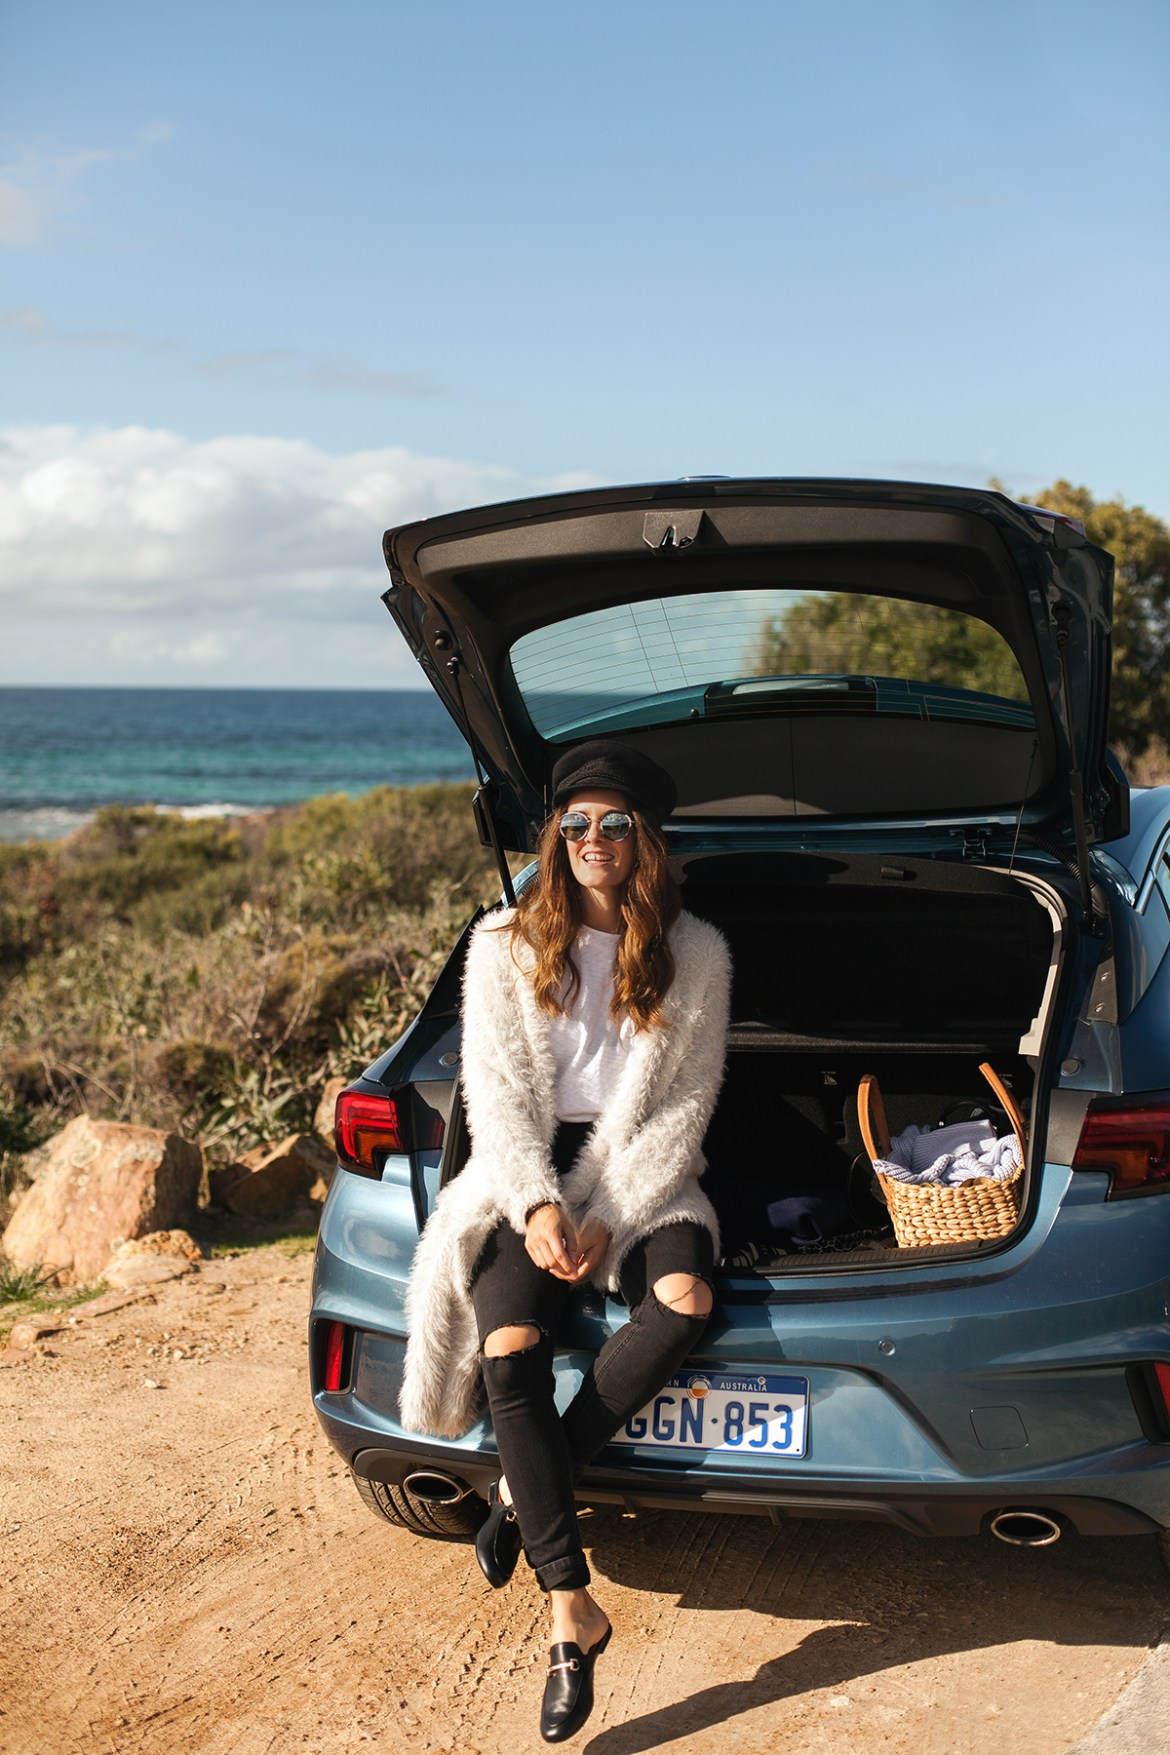 Heading down South with the Holden Astra by Jenelle of travel blog Inspiring Wit